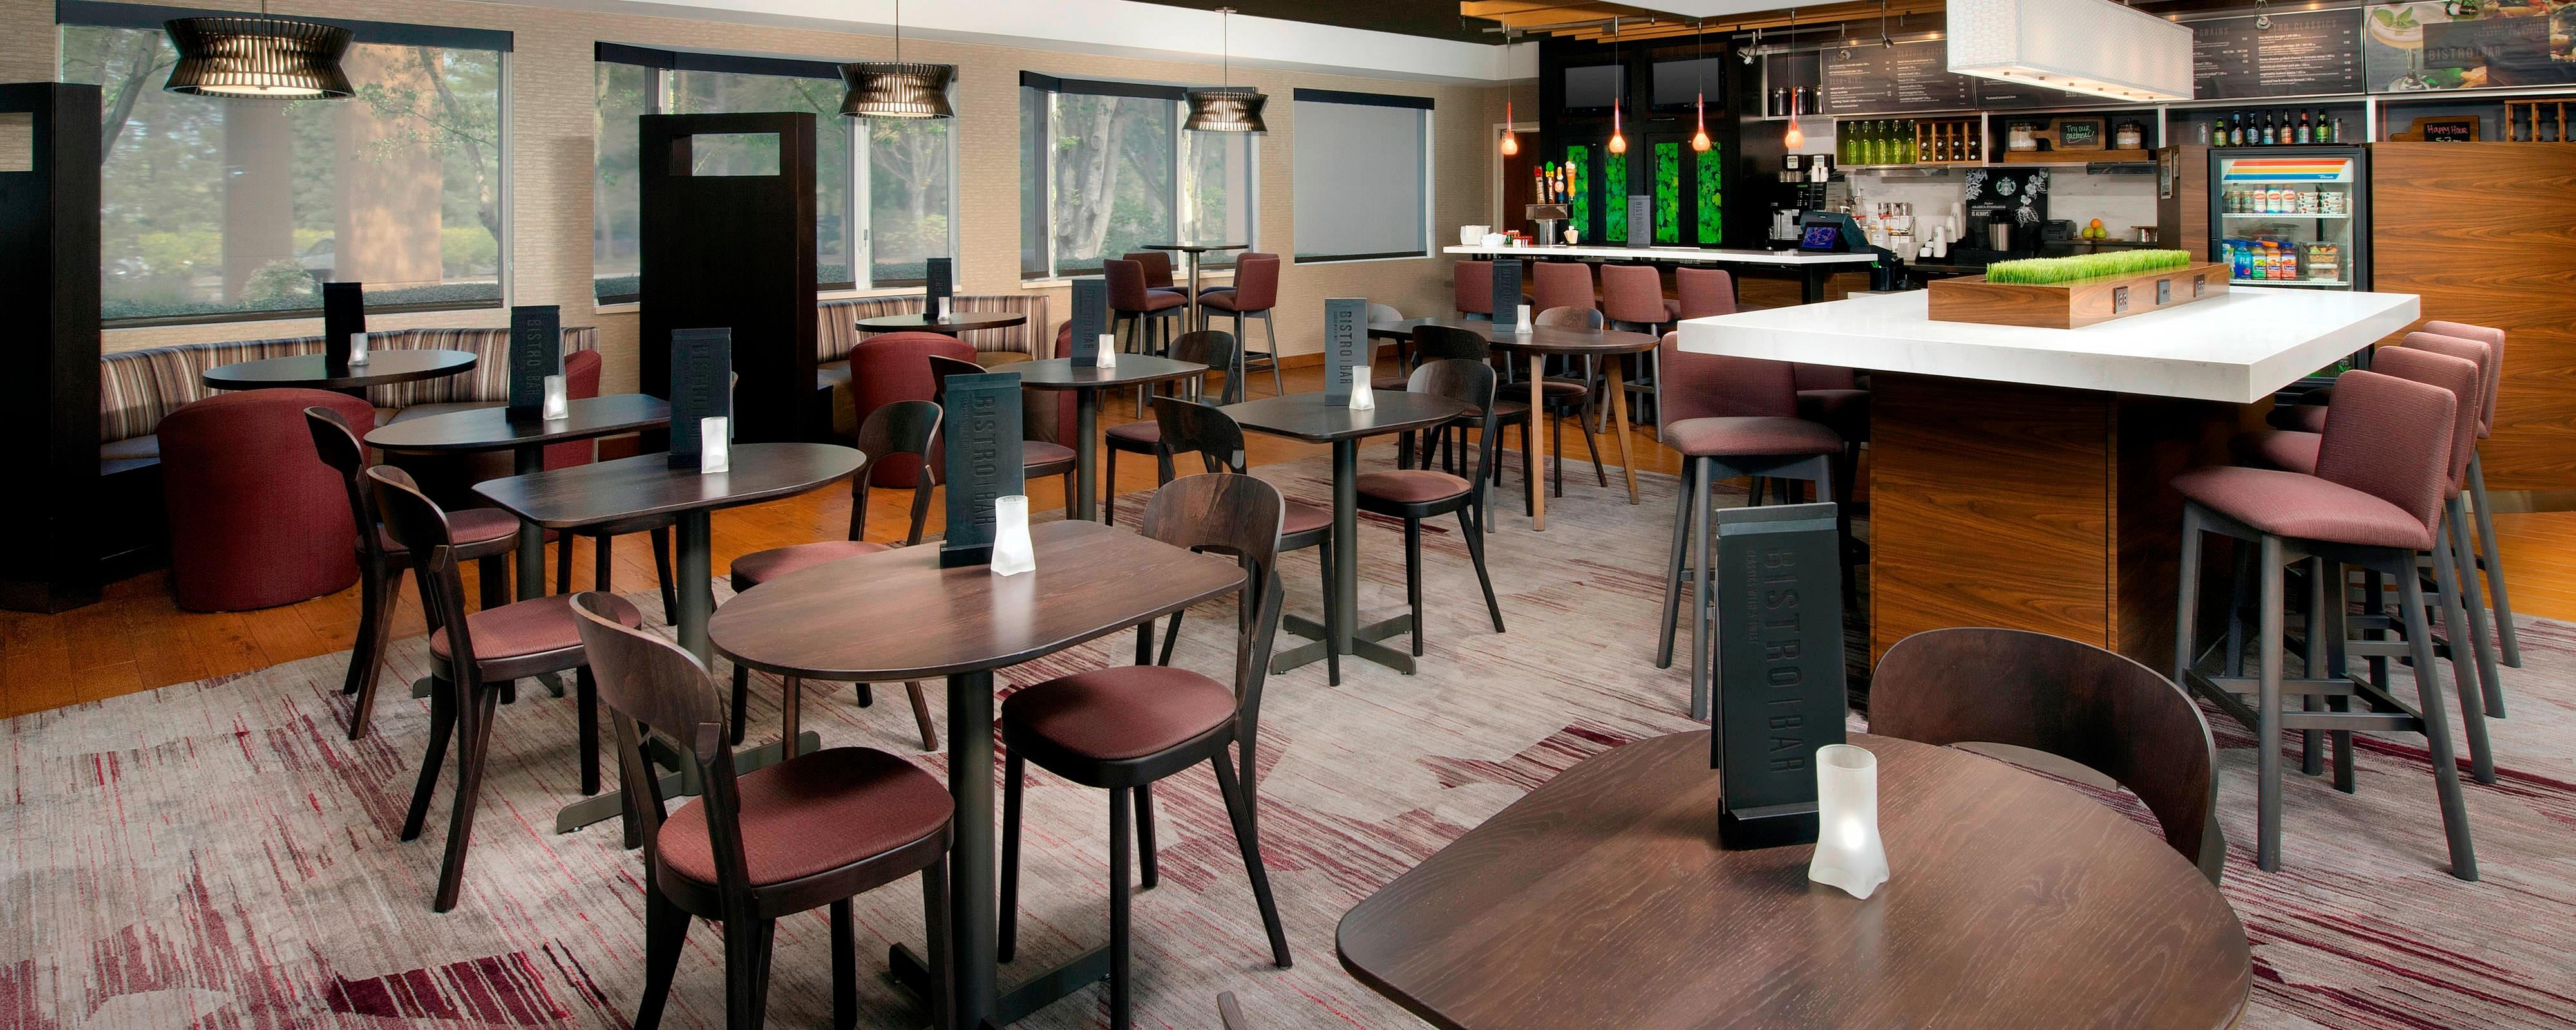 Hillsboro Or Hotel Restaurants And Lounges The Portland